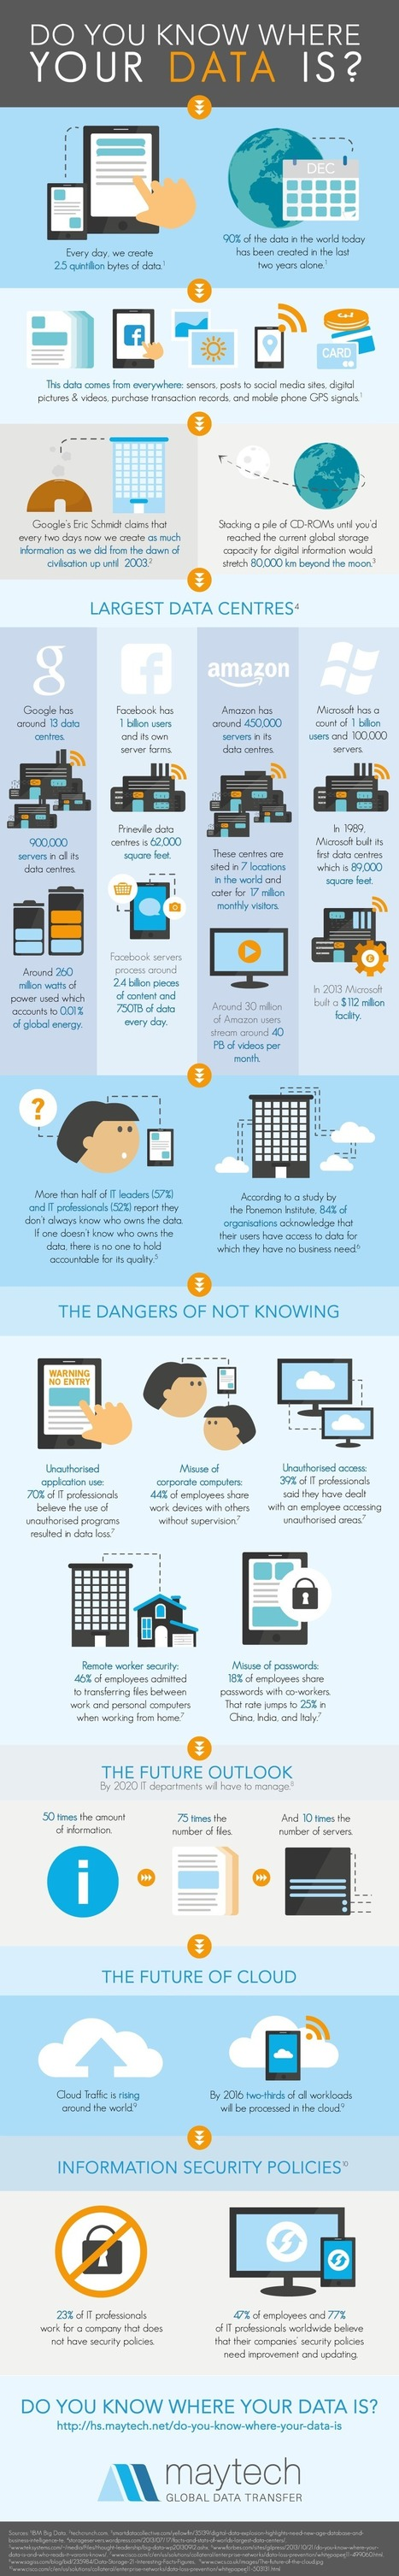 Do You Know Where Your Data Is? [Infographic] | infografias - infographics | Scoop.it